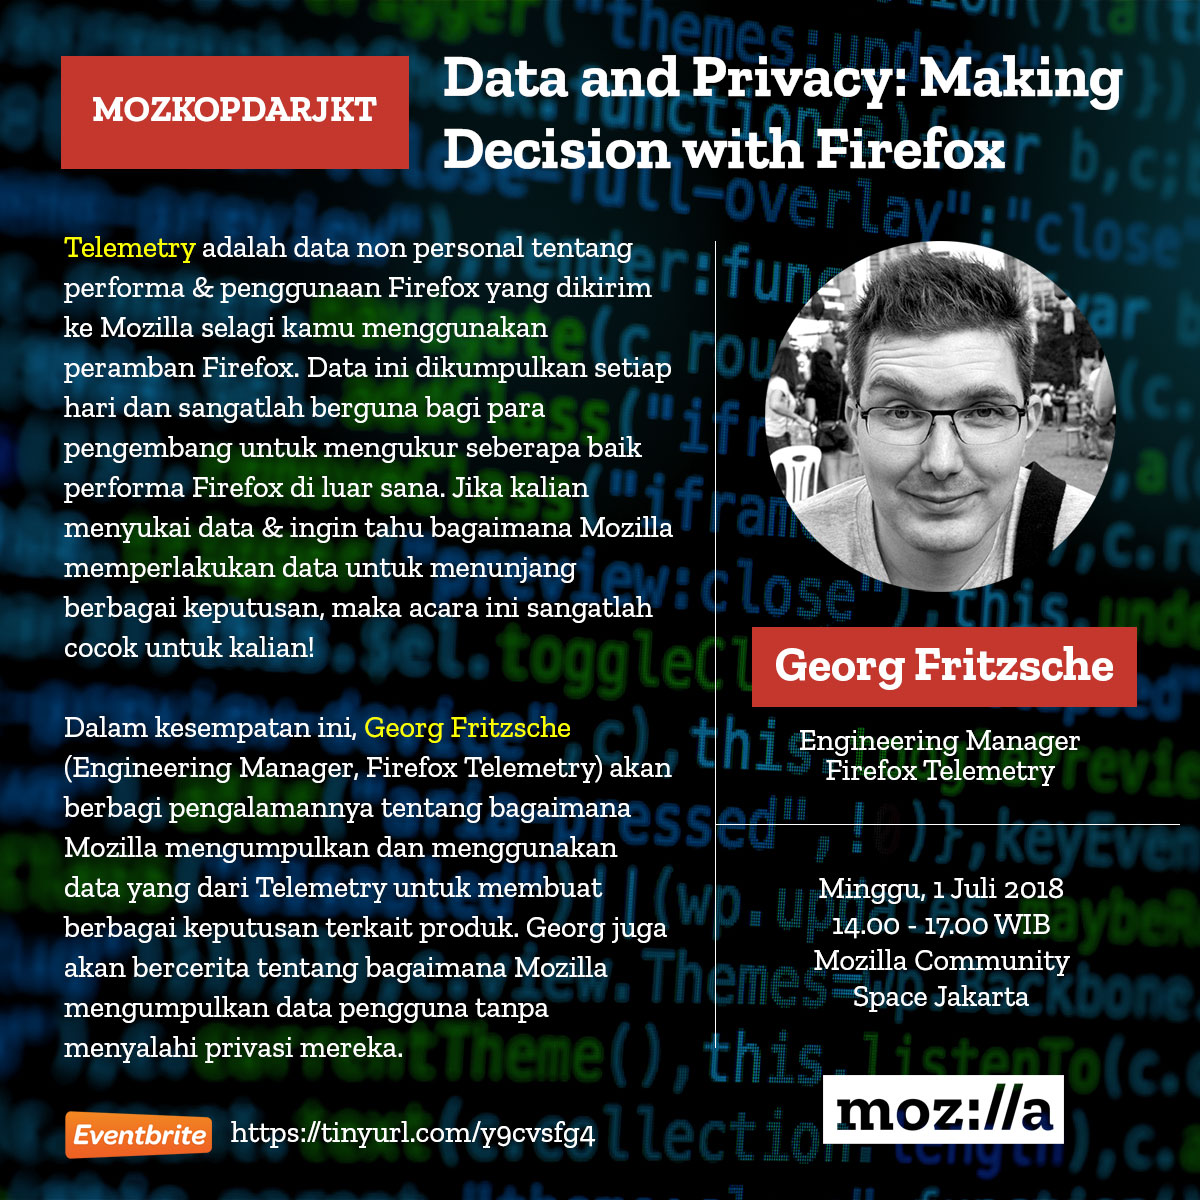 MozKopdarJKT, Data and Privacy: Making Decision with Firefox